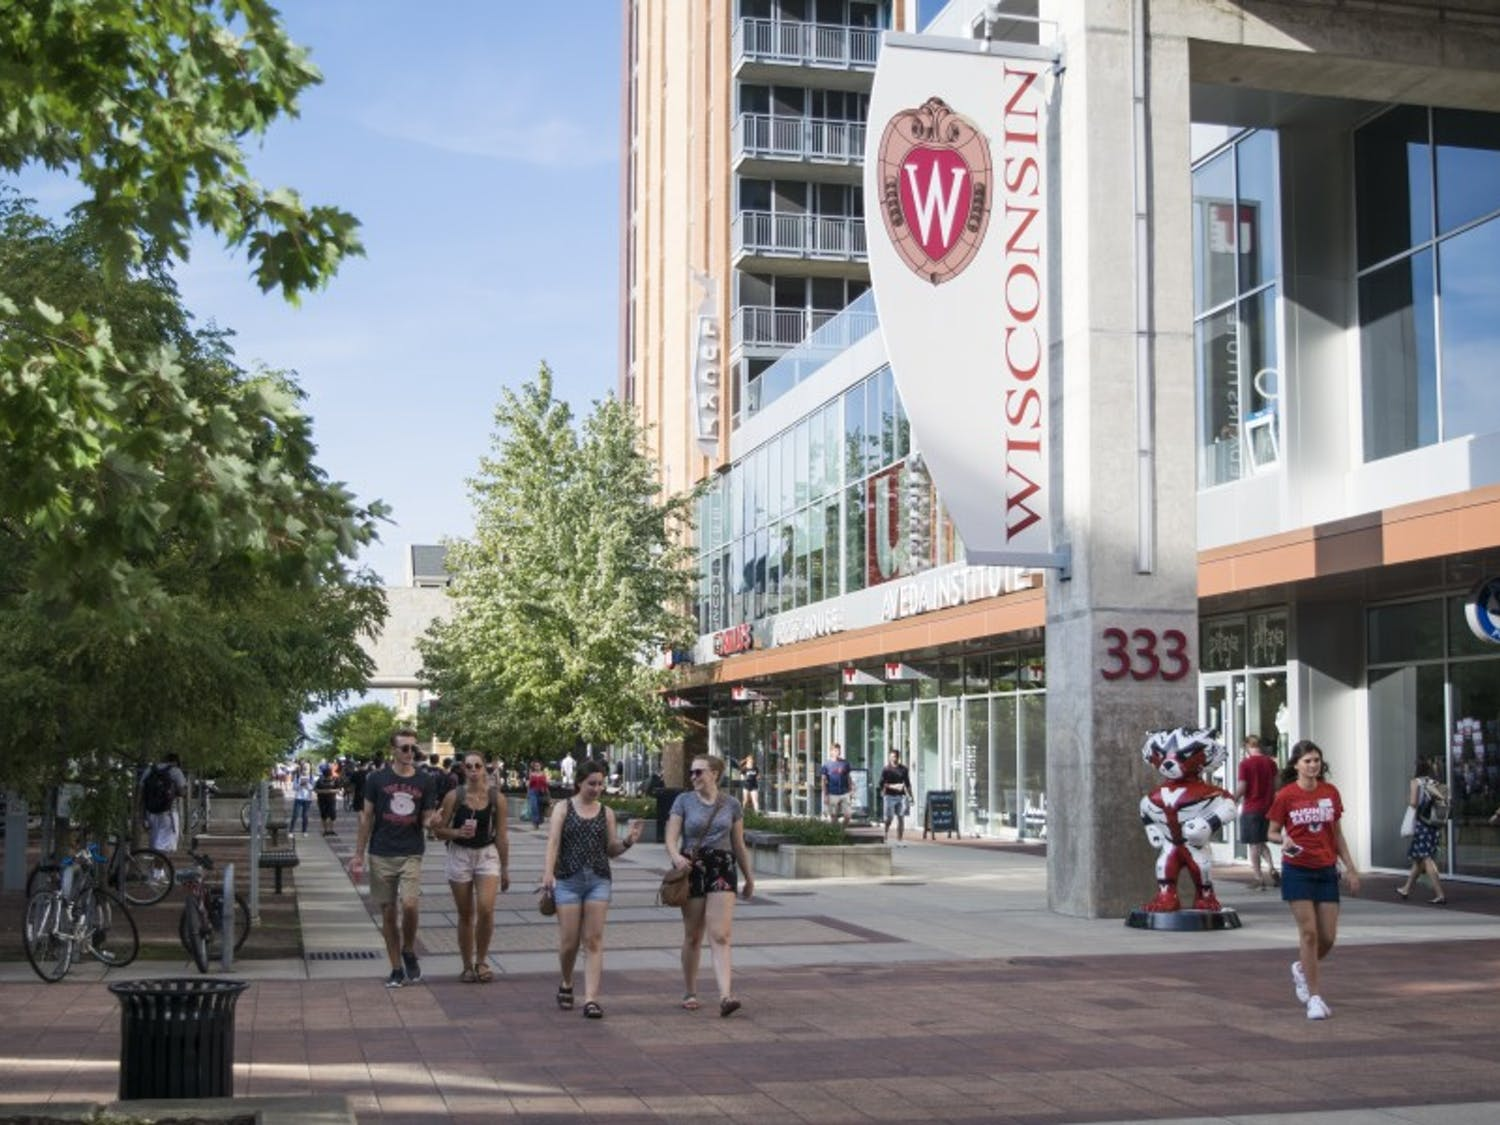 Overwhelminglife changes come along with being in college, but UW-Madison students have access to various resources to ease the transition.